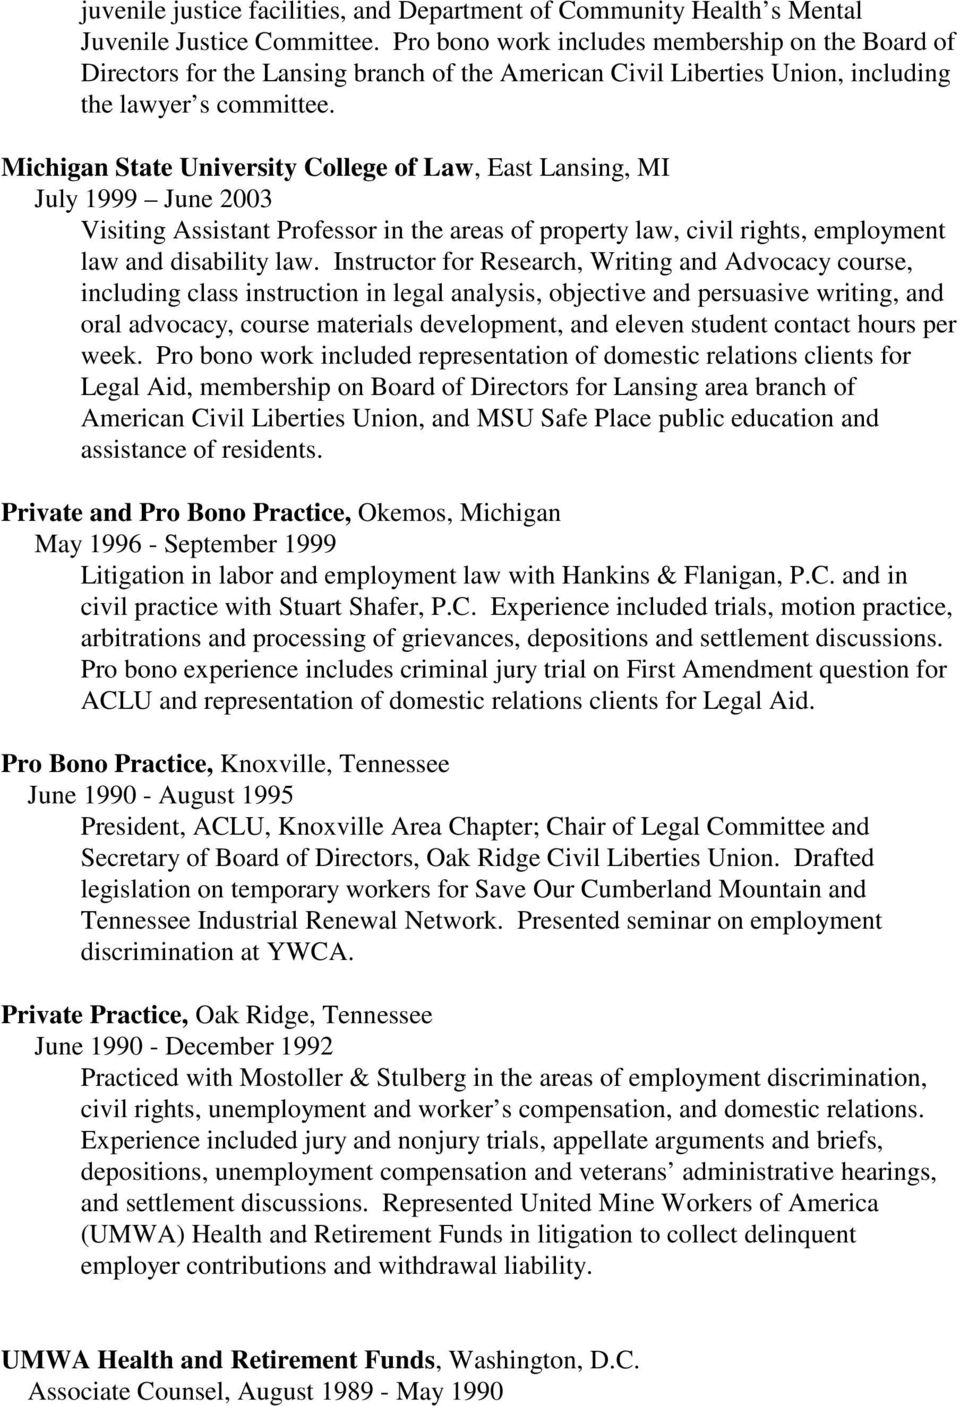 Michigan State University College of Law, East Lansing, MI July 1999 June 2003 Visiting Assistant Professor in the areas of property law, civil rights, employment law and disability law.